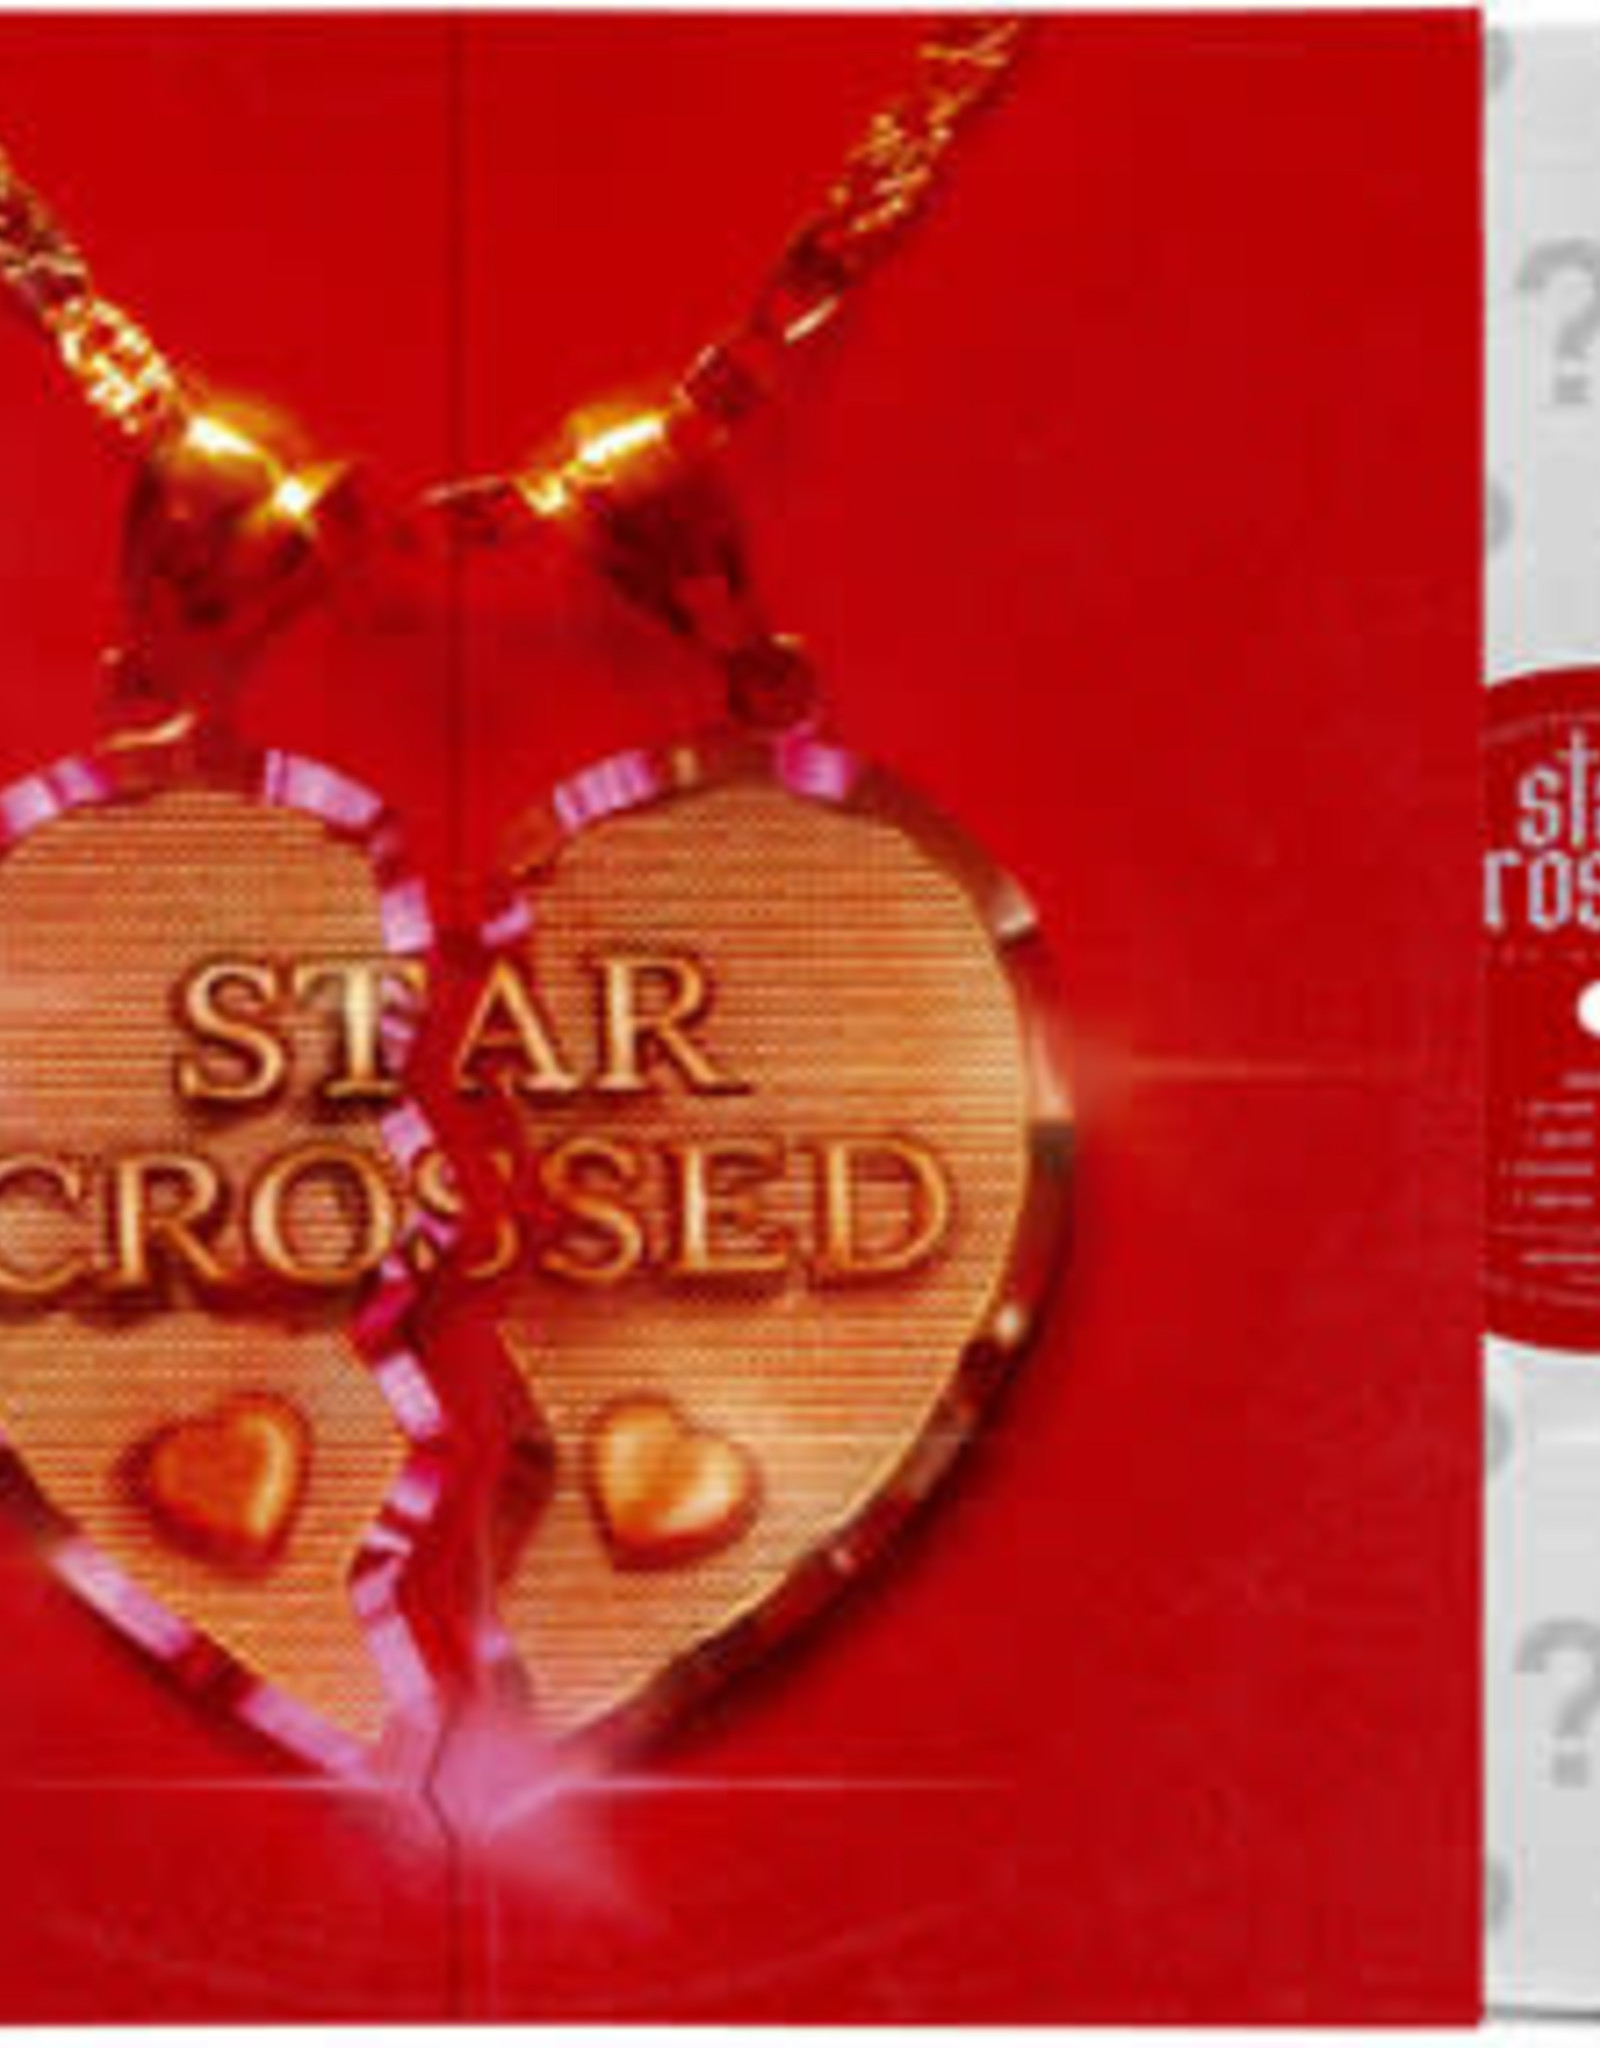 Kacey Musgraves - star-crossed (1 LP) (Surprise Color 3 of 3)